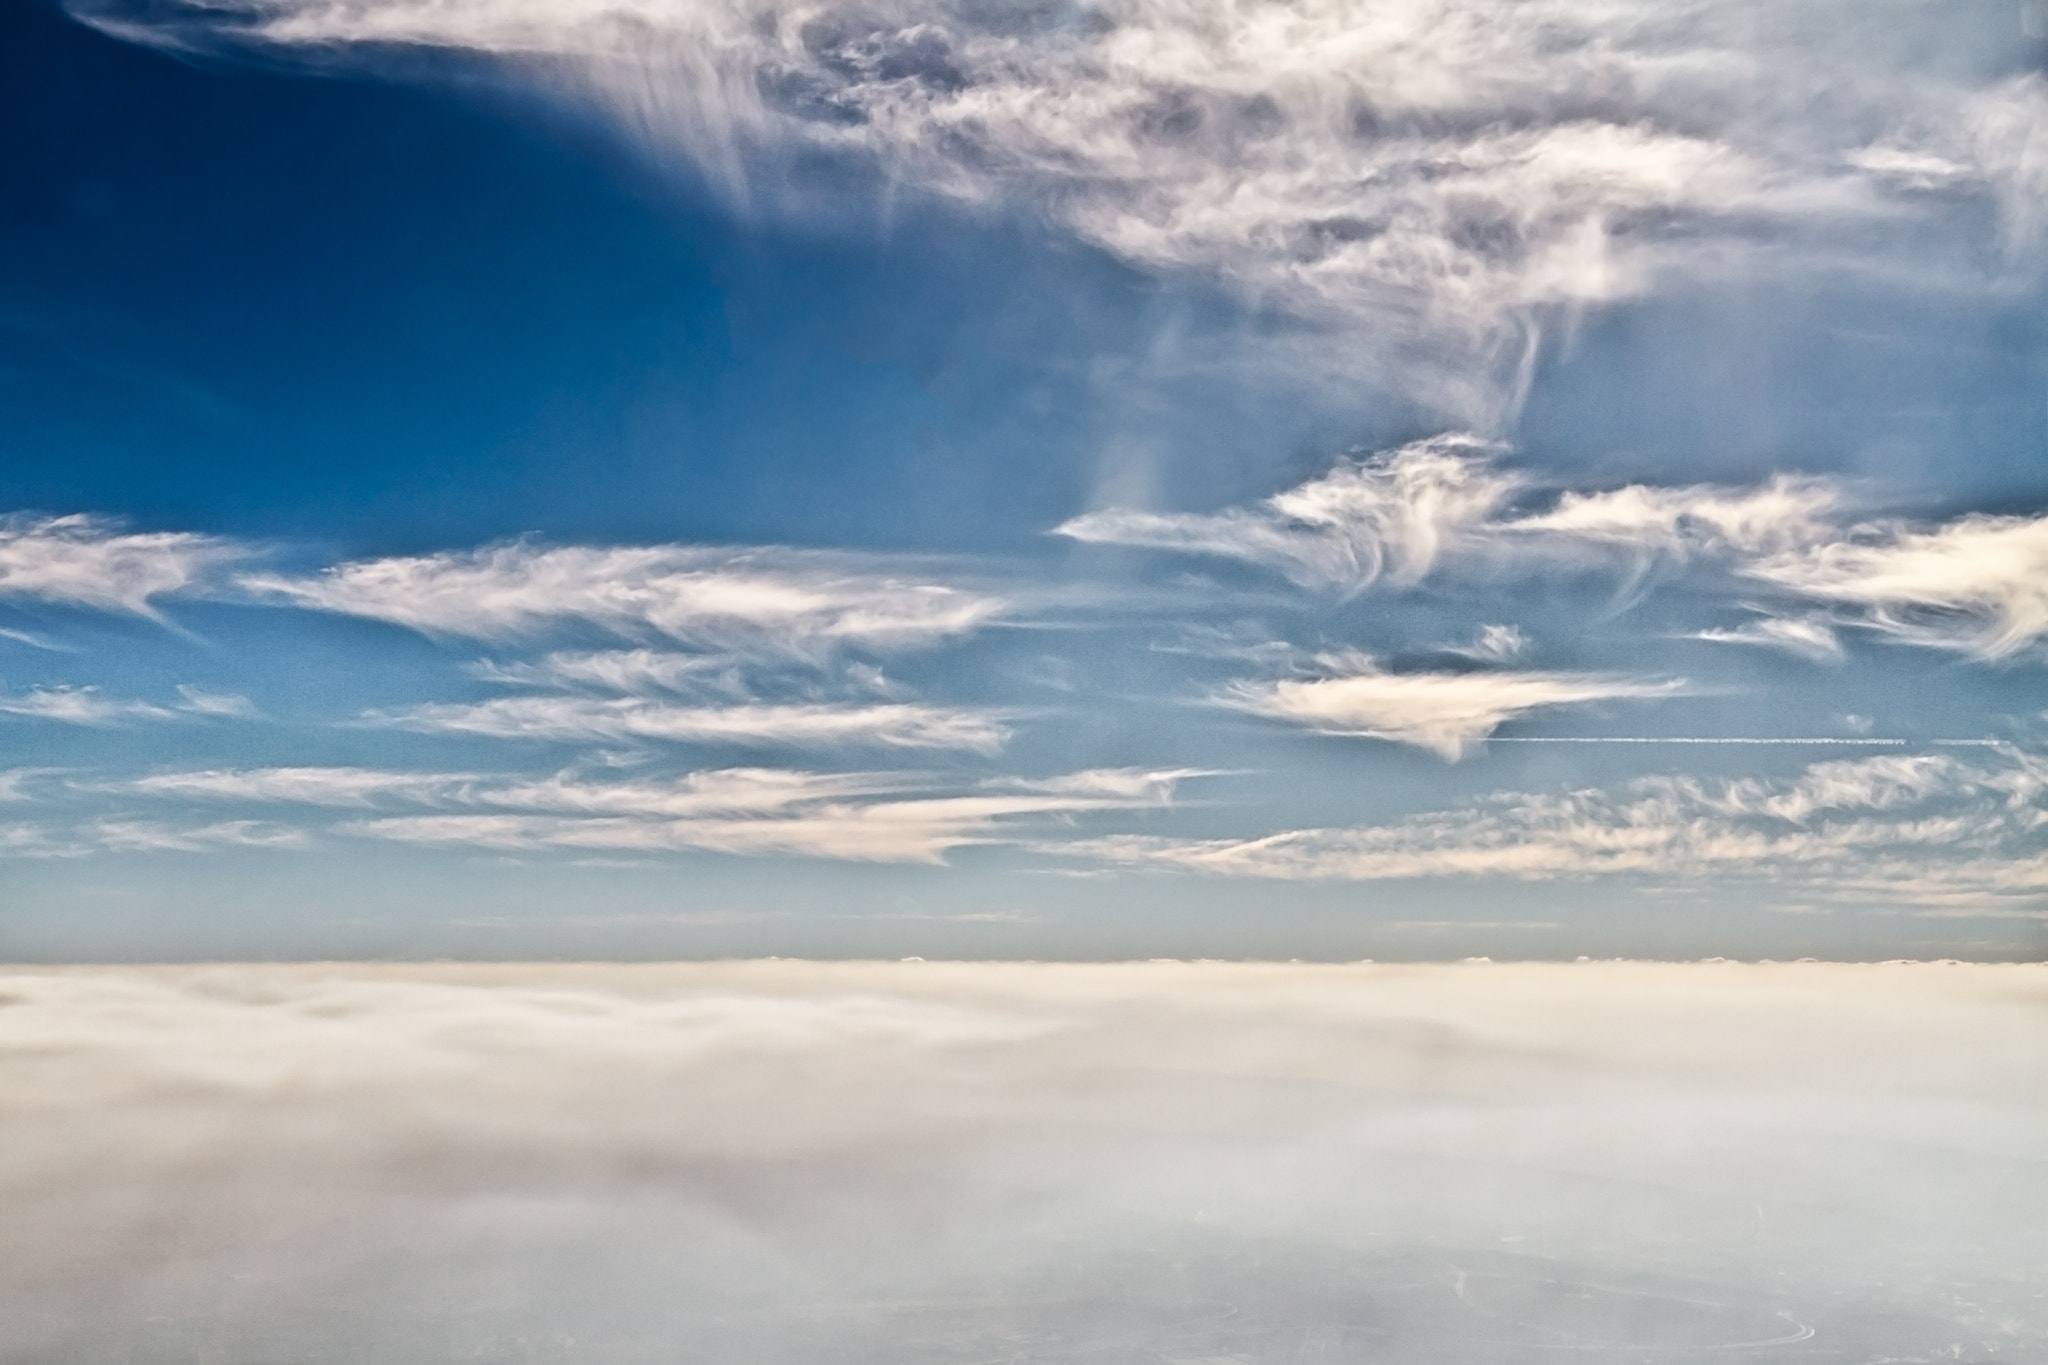 Photograph Between the clouds by Dereje Belachew on 500px